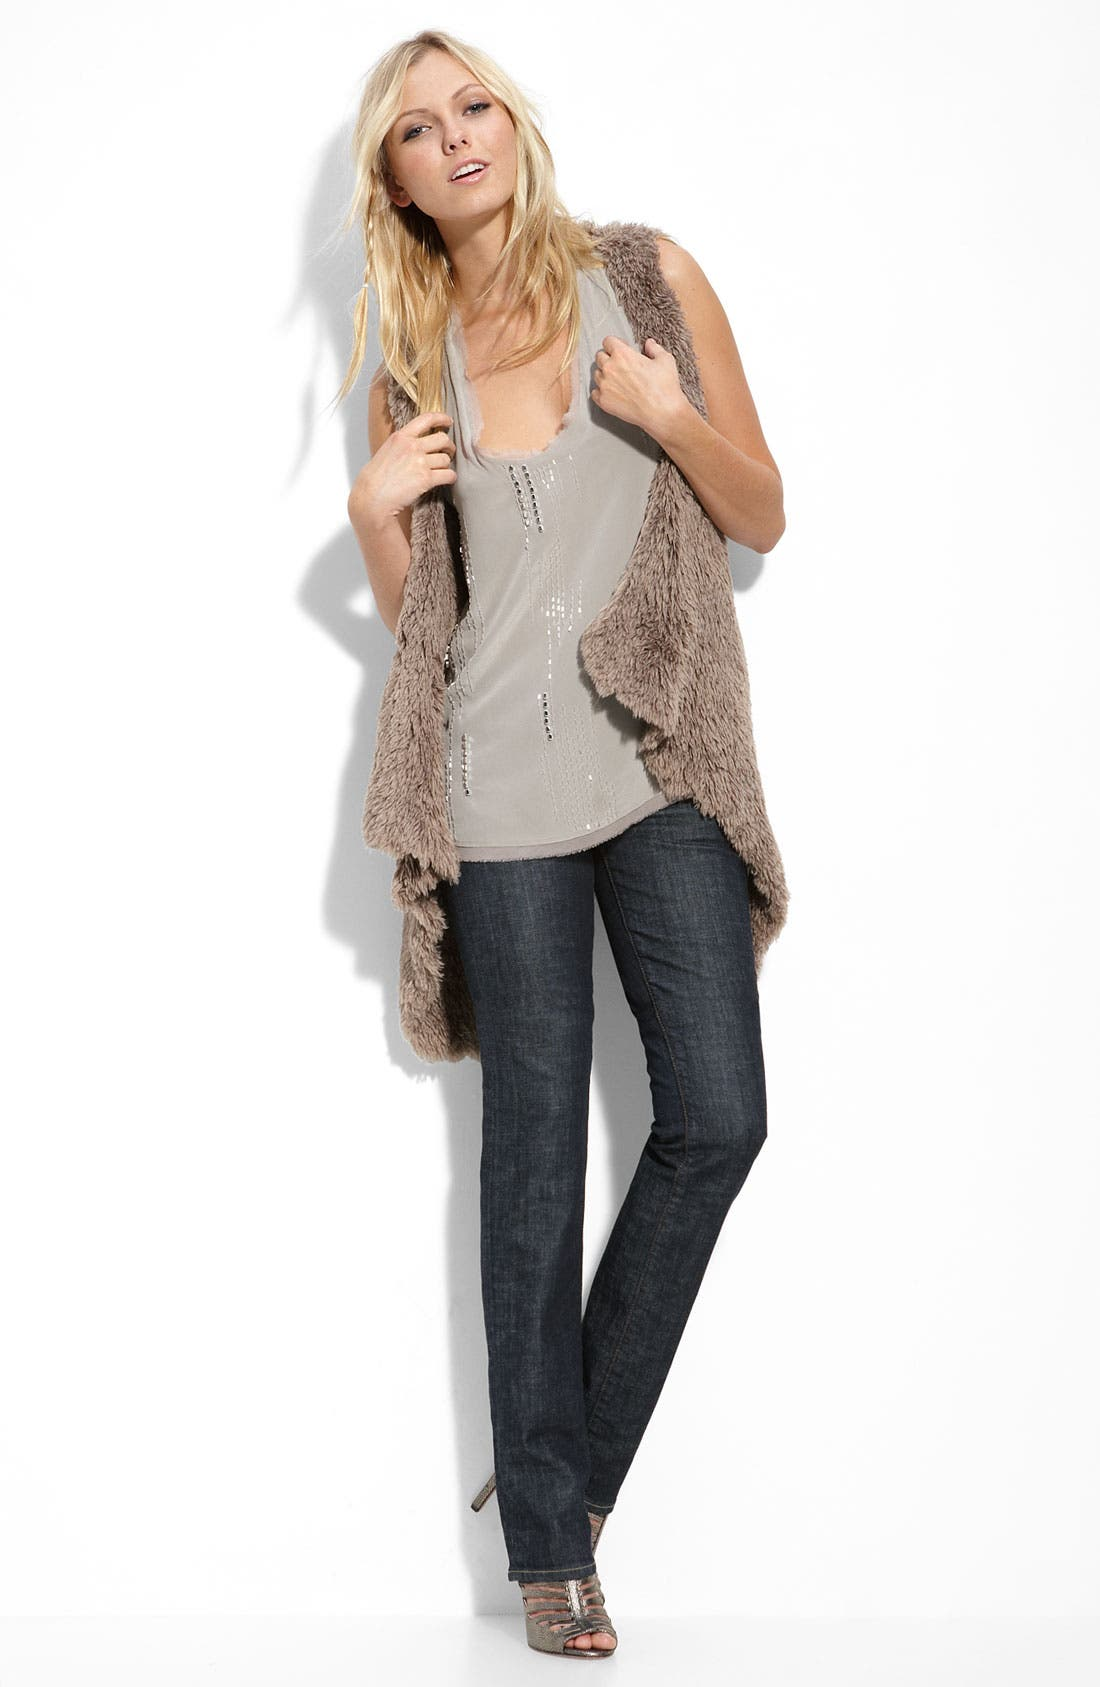 Main Image - Pure Sugar Tank & Kensie Faux Fur Vest with Citizens of Humanity Stretch Jeans